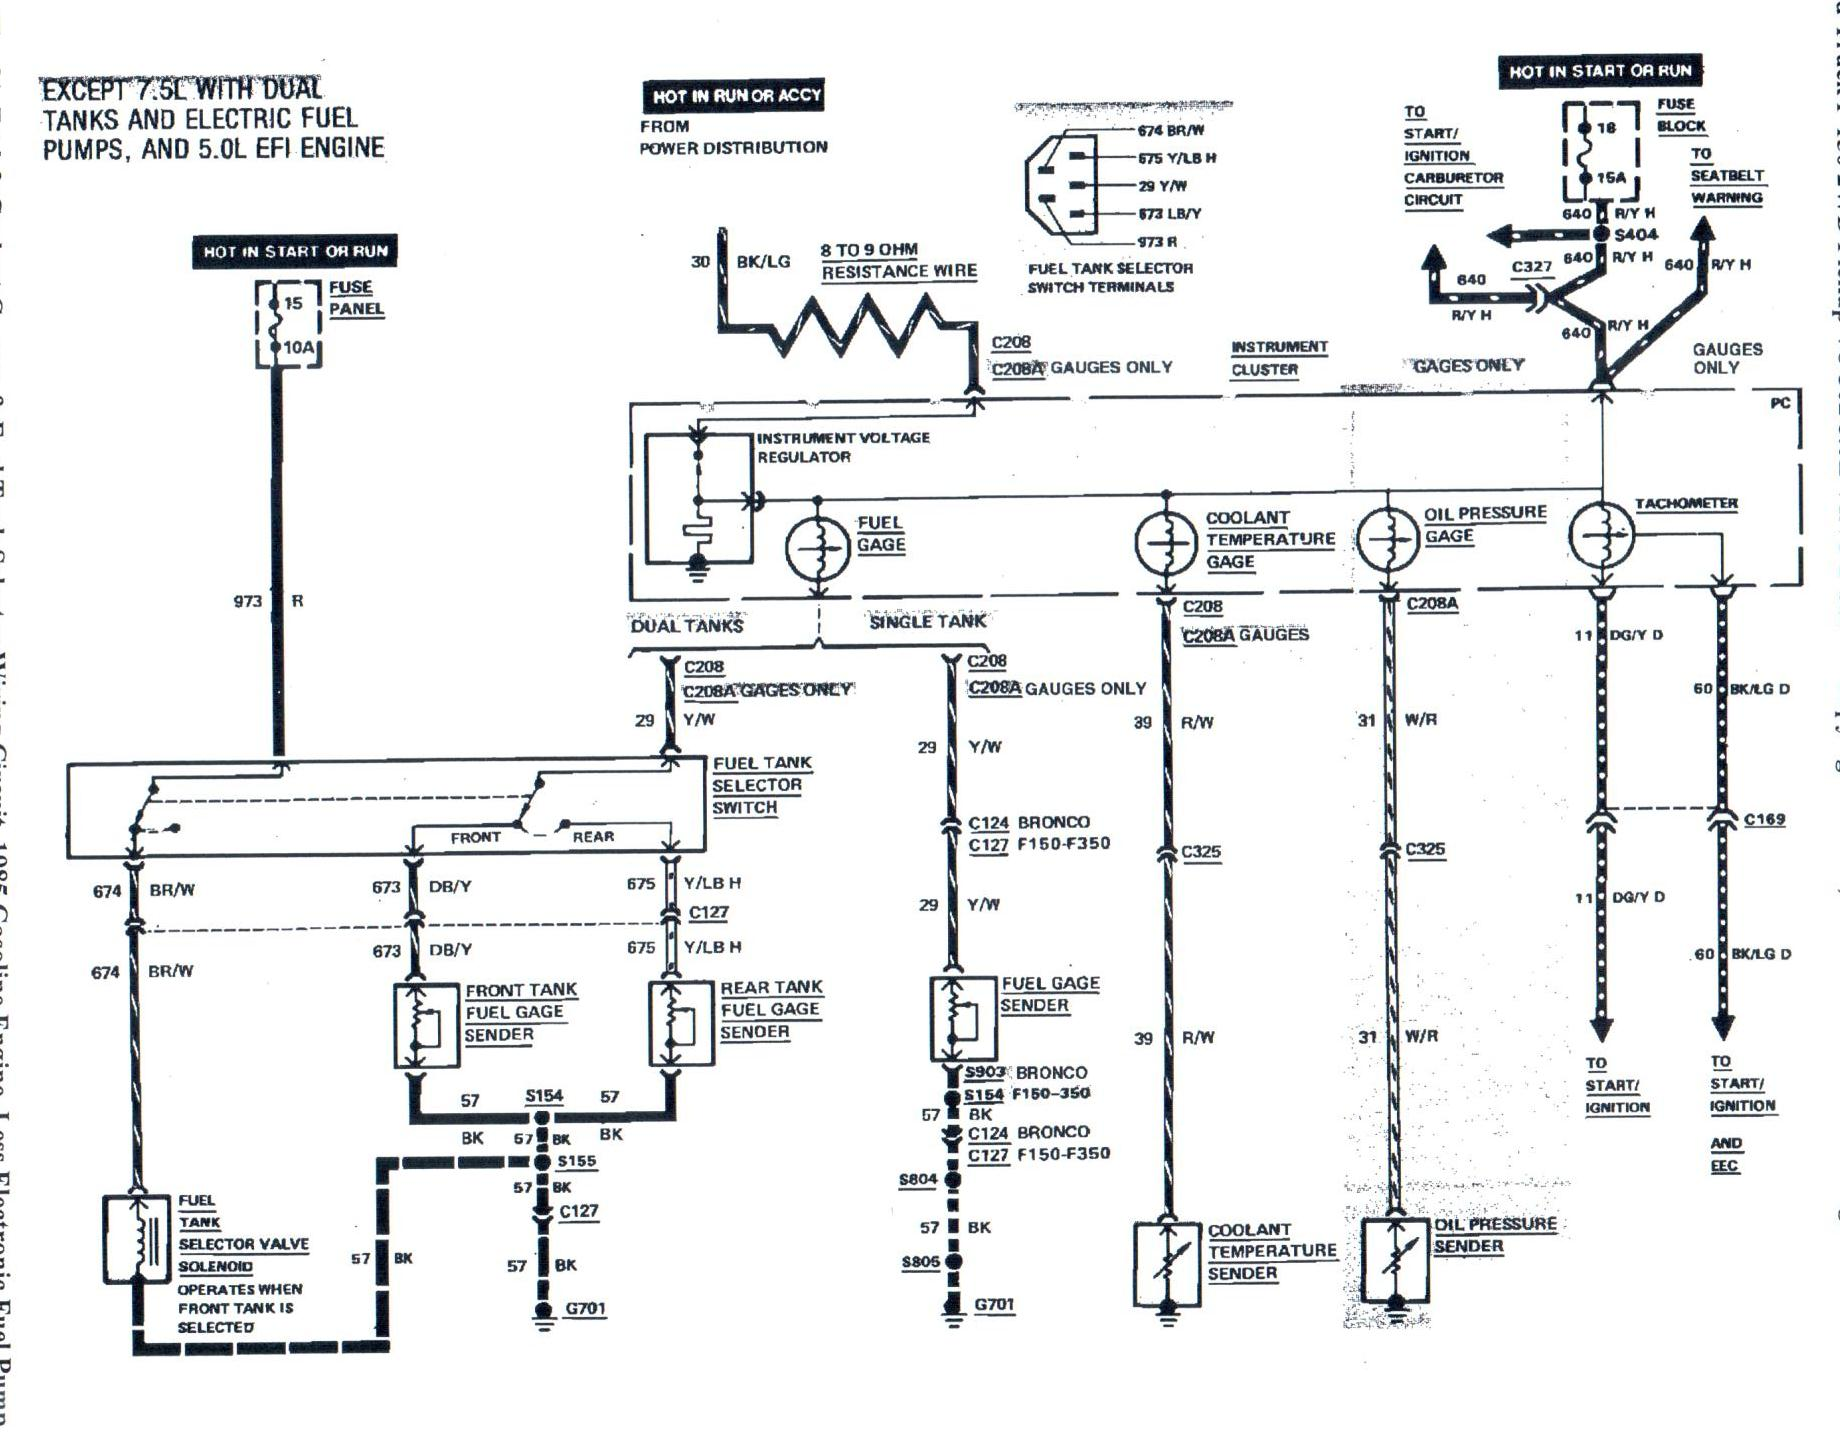 1989 ford f250 fuel system diagram